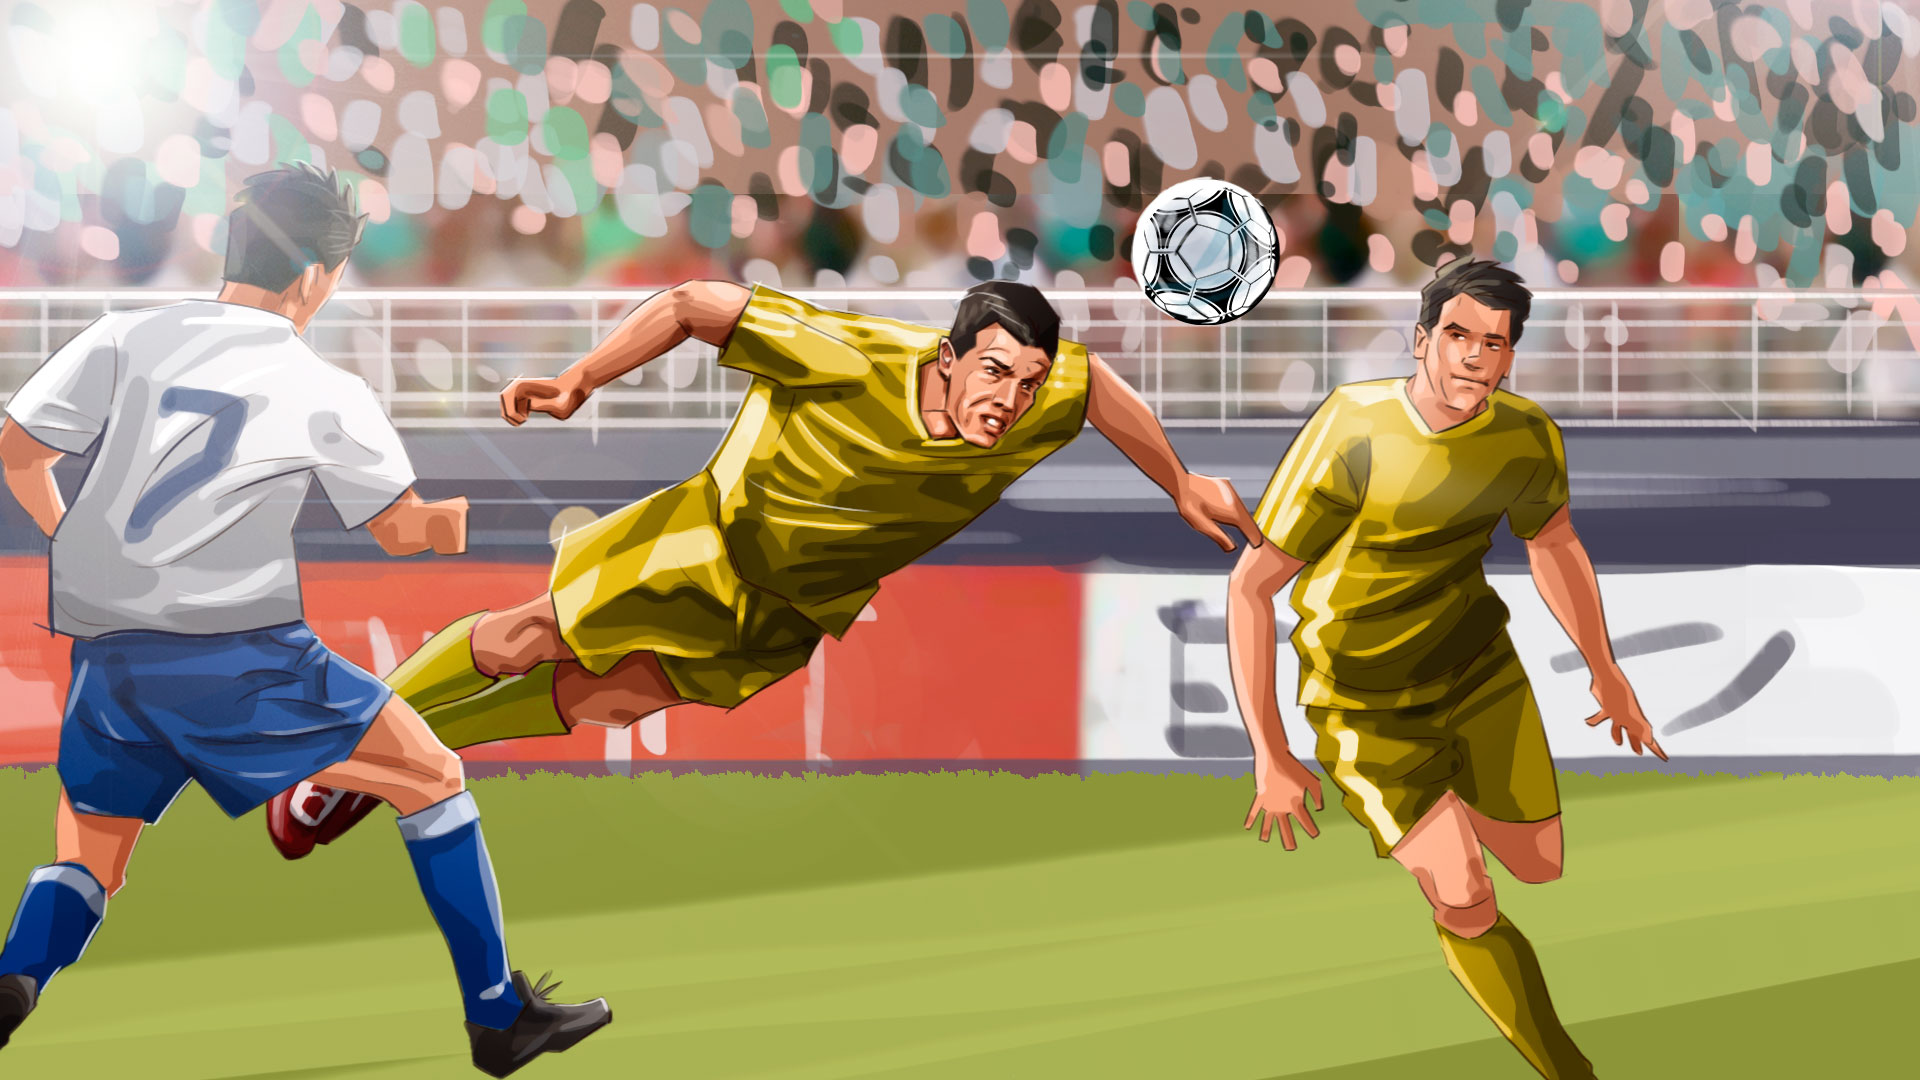 Soccer game head kick illustration, 'Famous matches - illustrations for web game